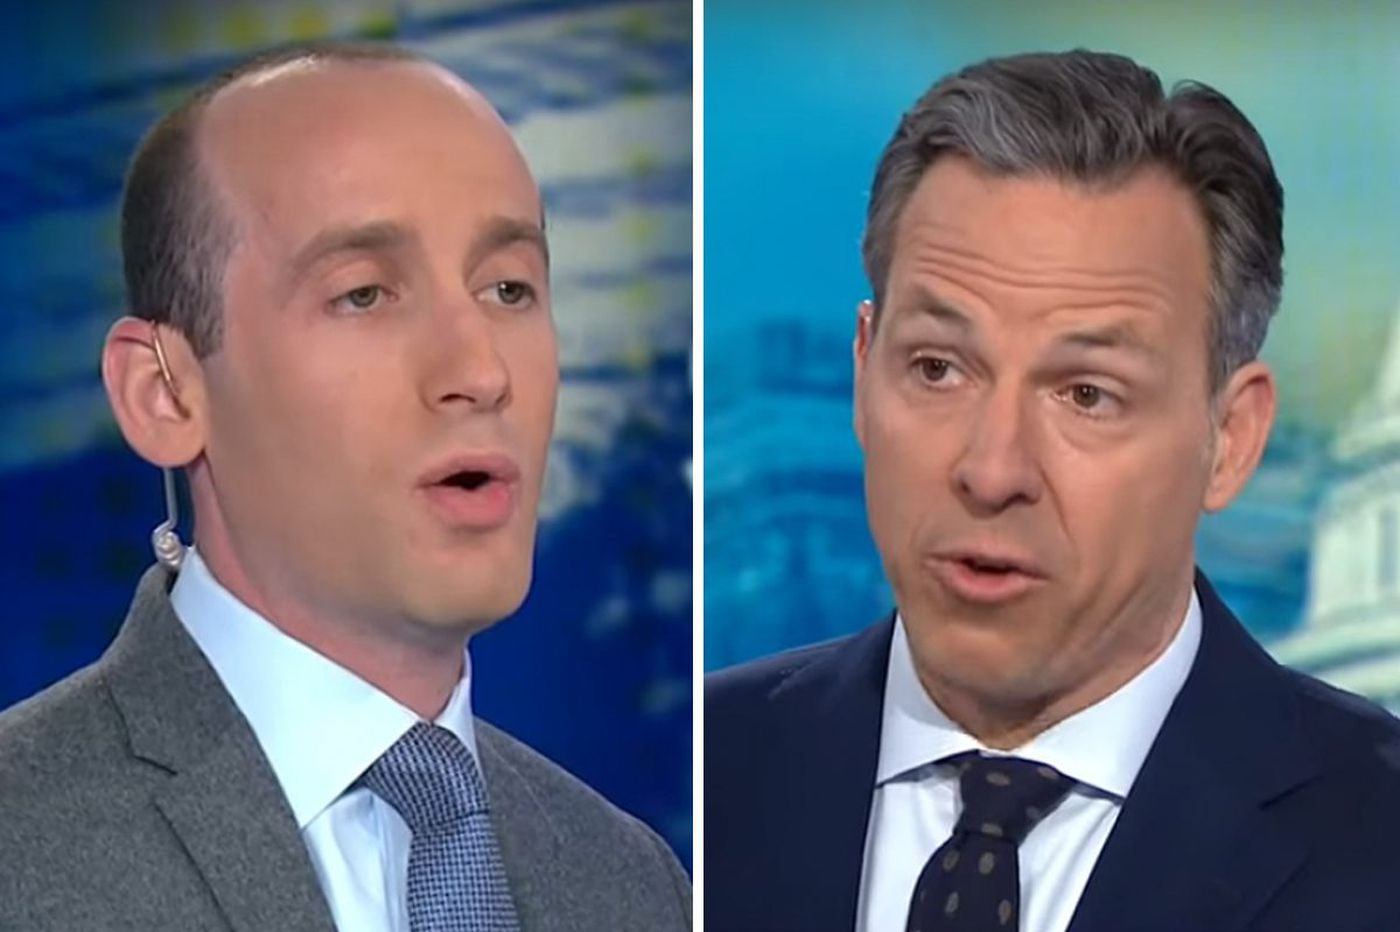 After bizarre interview, CNN had to call security on top Trump adviser